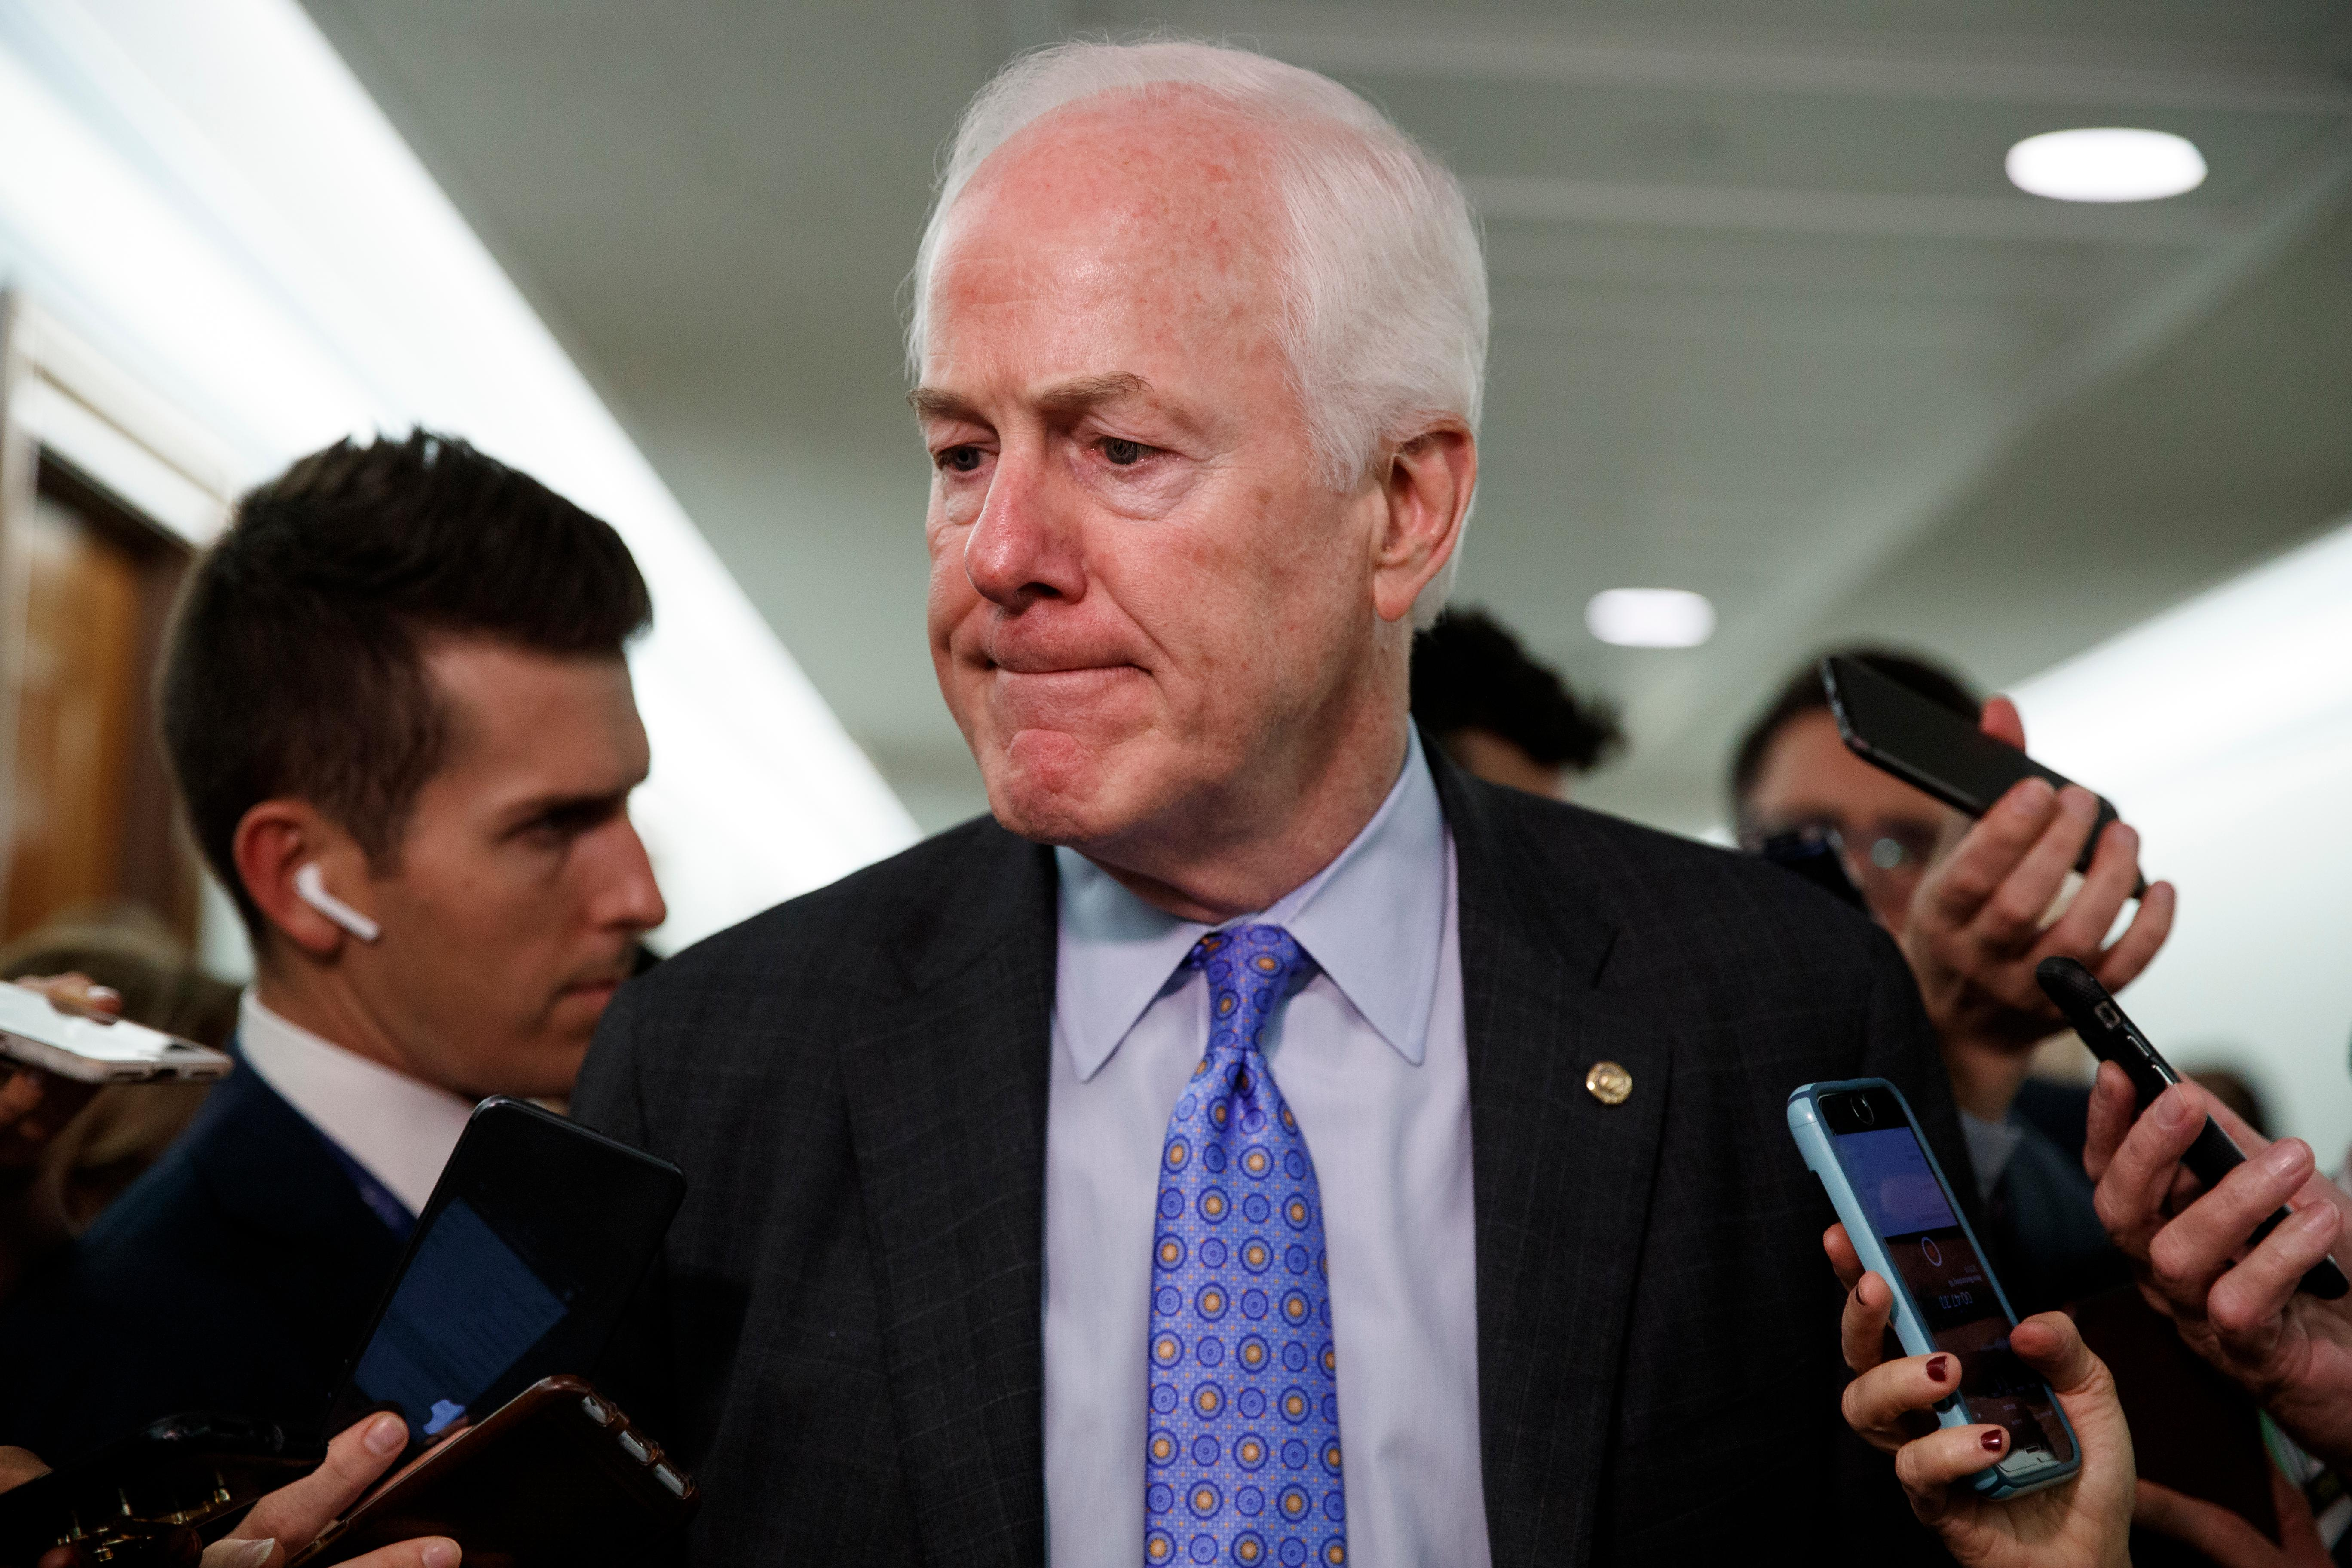 Sen. John Cornyn, R-Texas leaves the Senate Judiciary Committee hearing on Thursday, Sept. 27, 2018, with Christine Blasey Ford and Supreme Court nominee Brett Kavanaugh. (AP Photo/Carolyn Kaster)